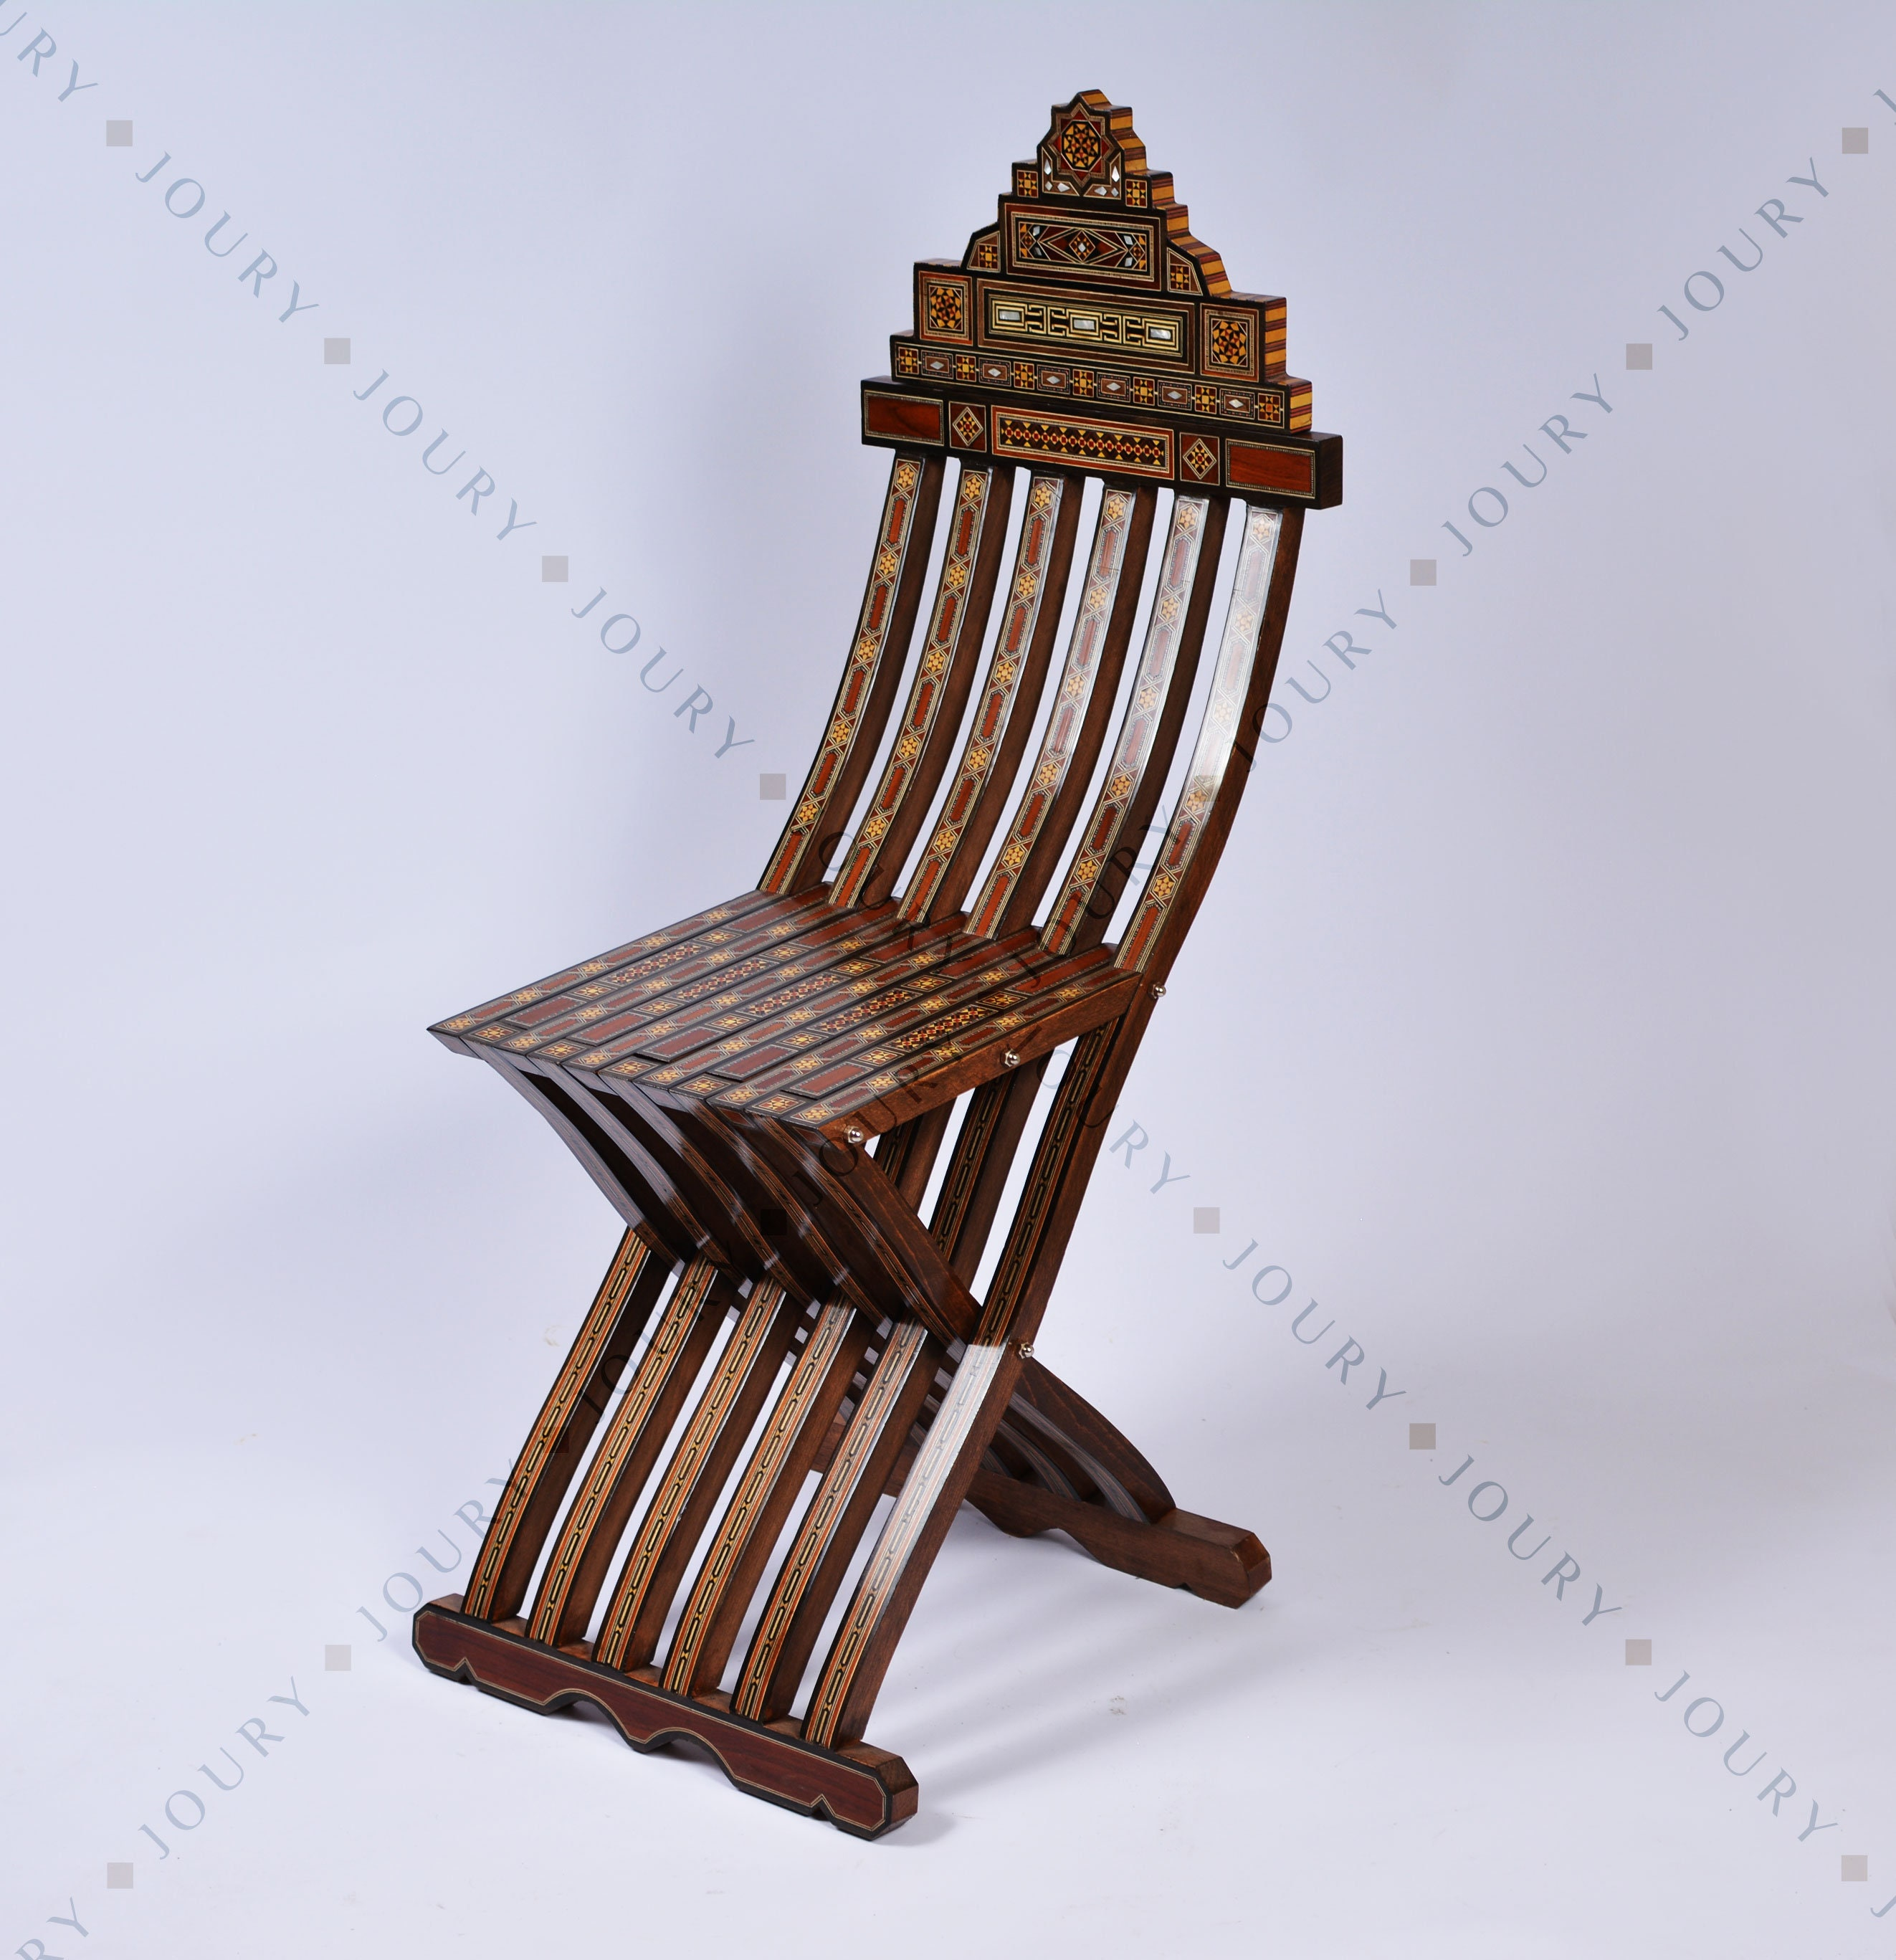 Handmade Vintage Wooden Chair Folding Chair Home Decor Vanity Chair Mosaic Chair Side Chair Inlaid With Mother Of Pearl